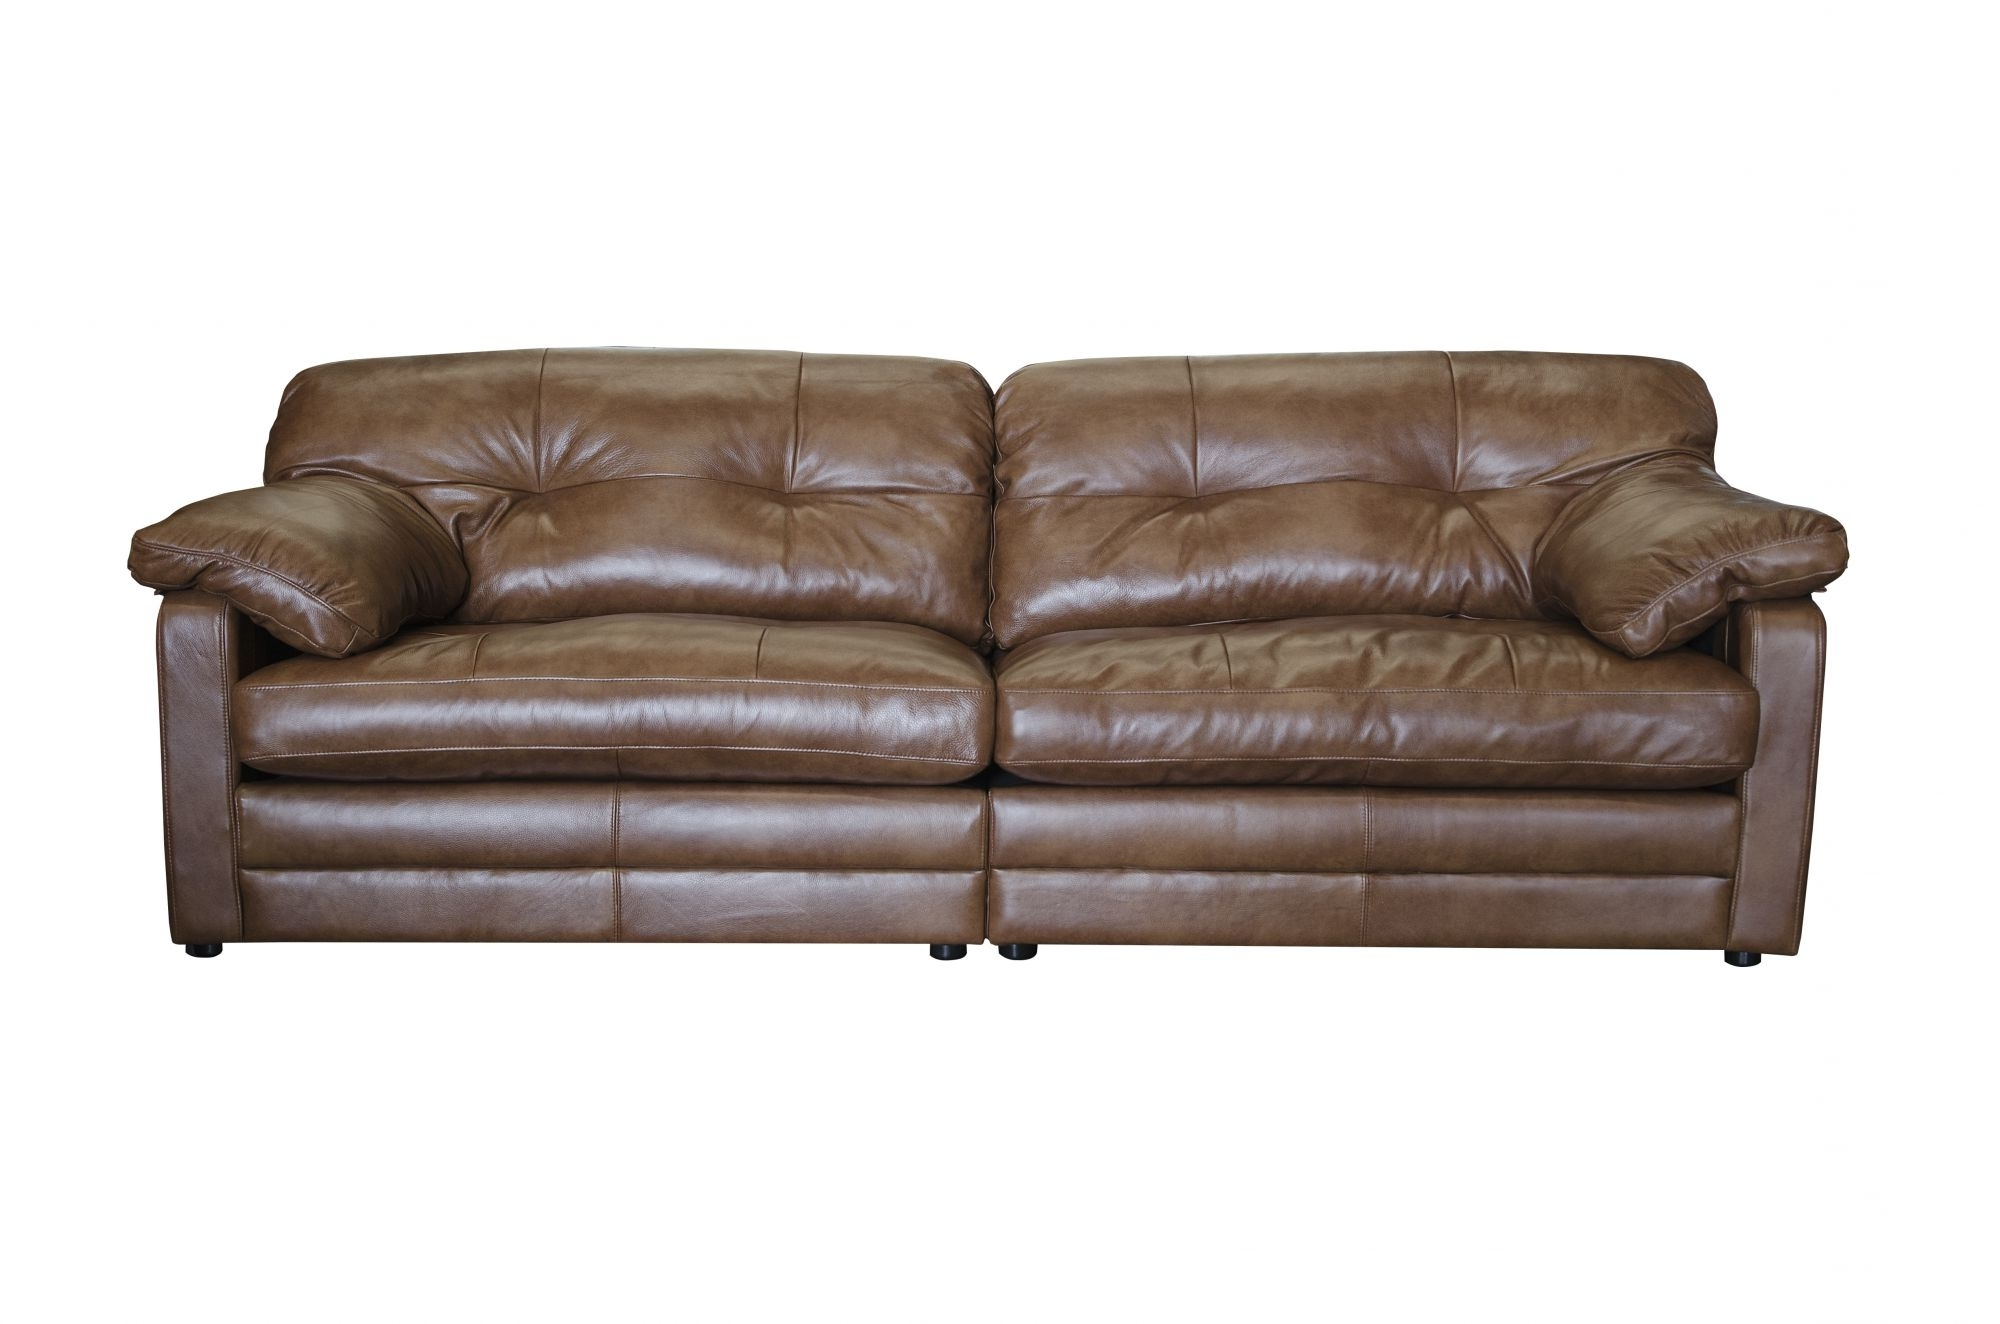 Most Recent Large 4 Seater Sofas Within 4 Seater Sofas – Choose Your 4 Seater Online At Aldiss (View 20 of 20)